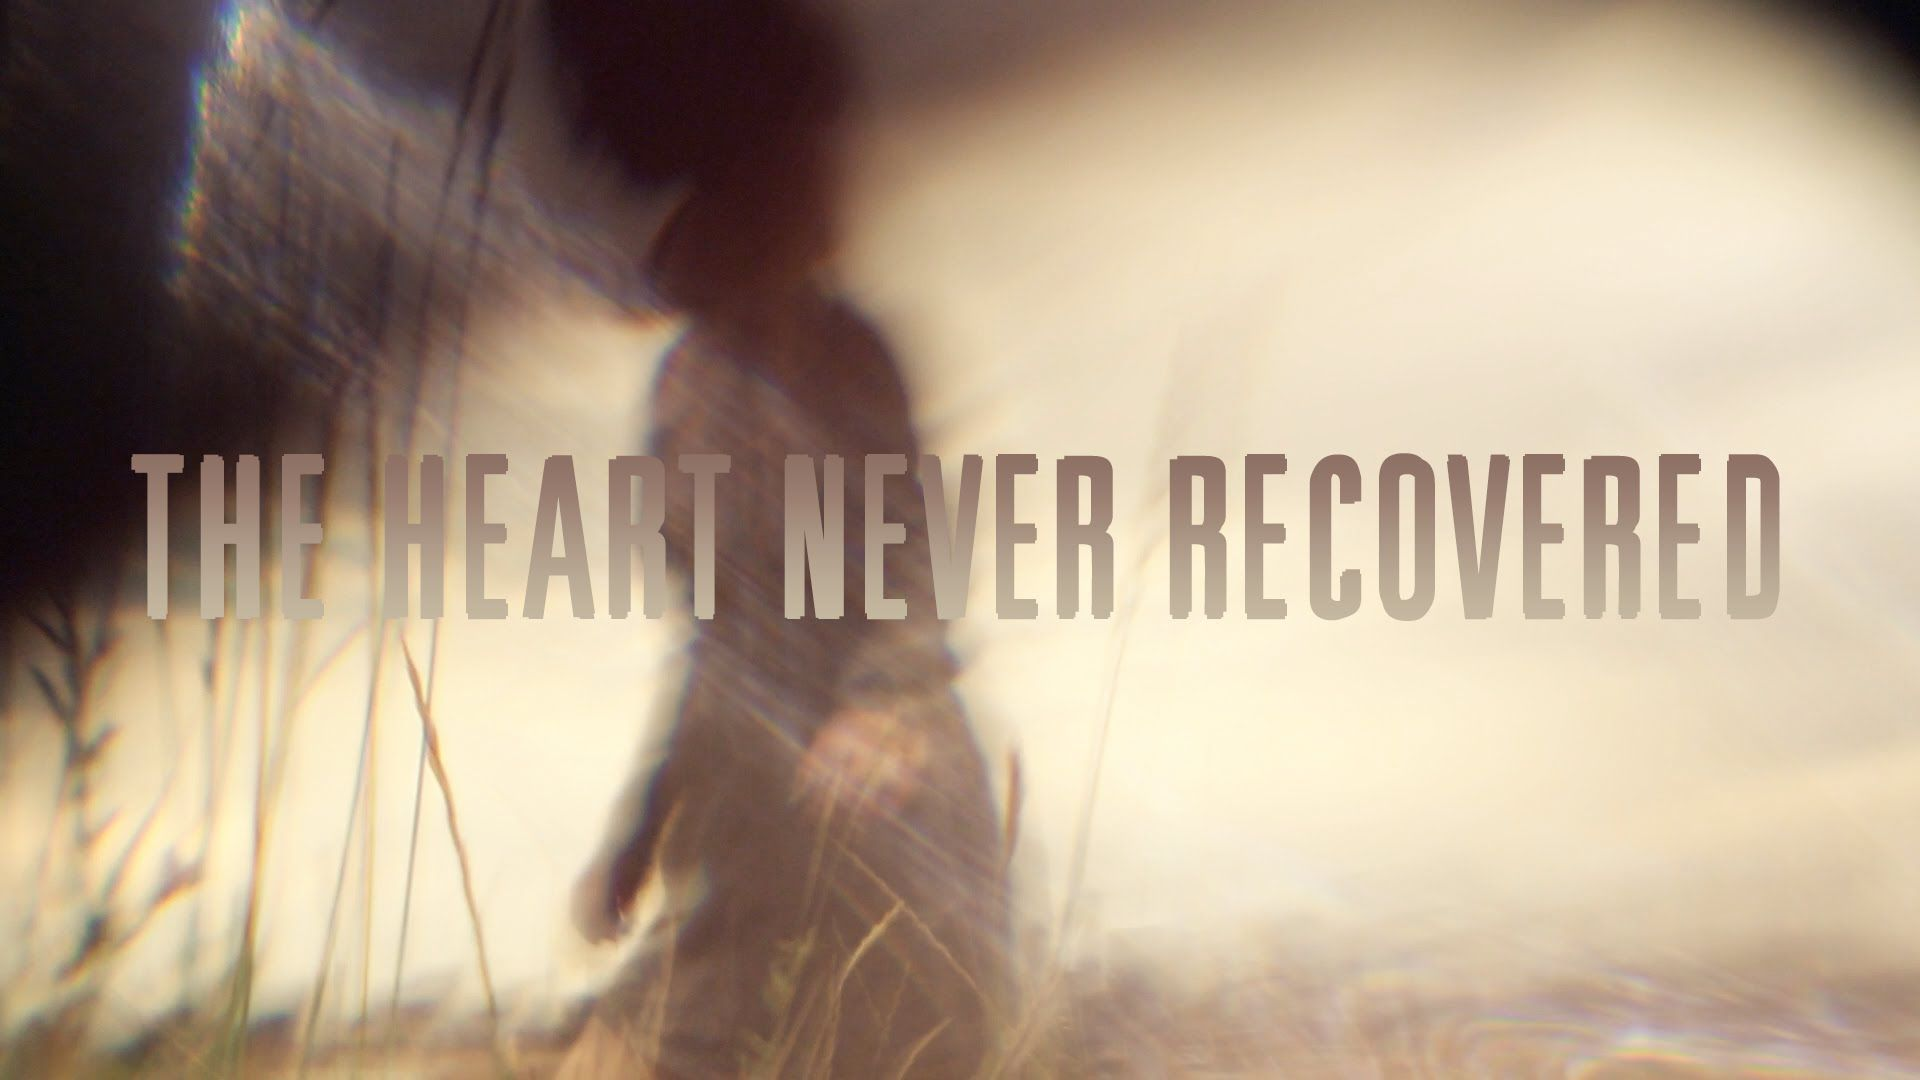 """the heart never recovered"" - a shoreline dream"